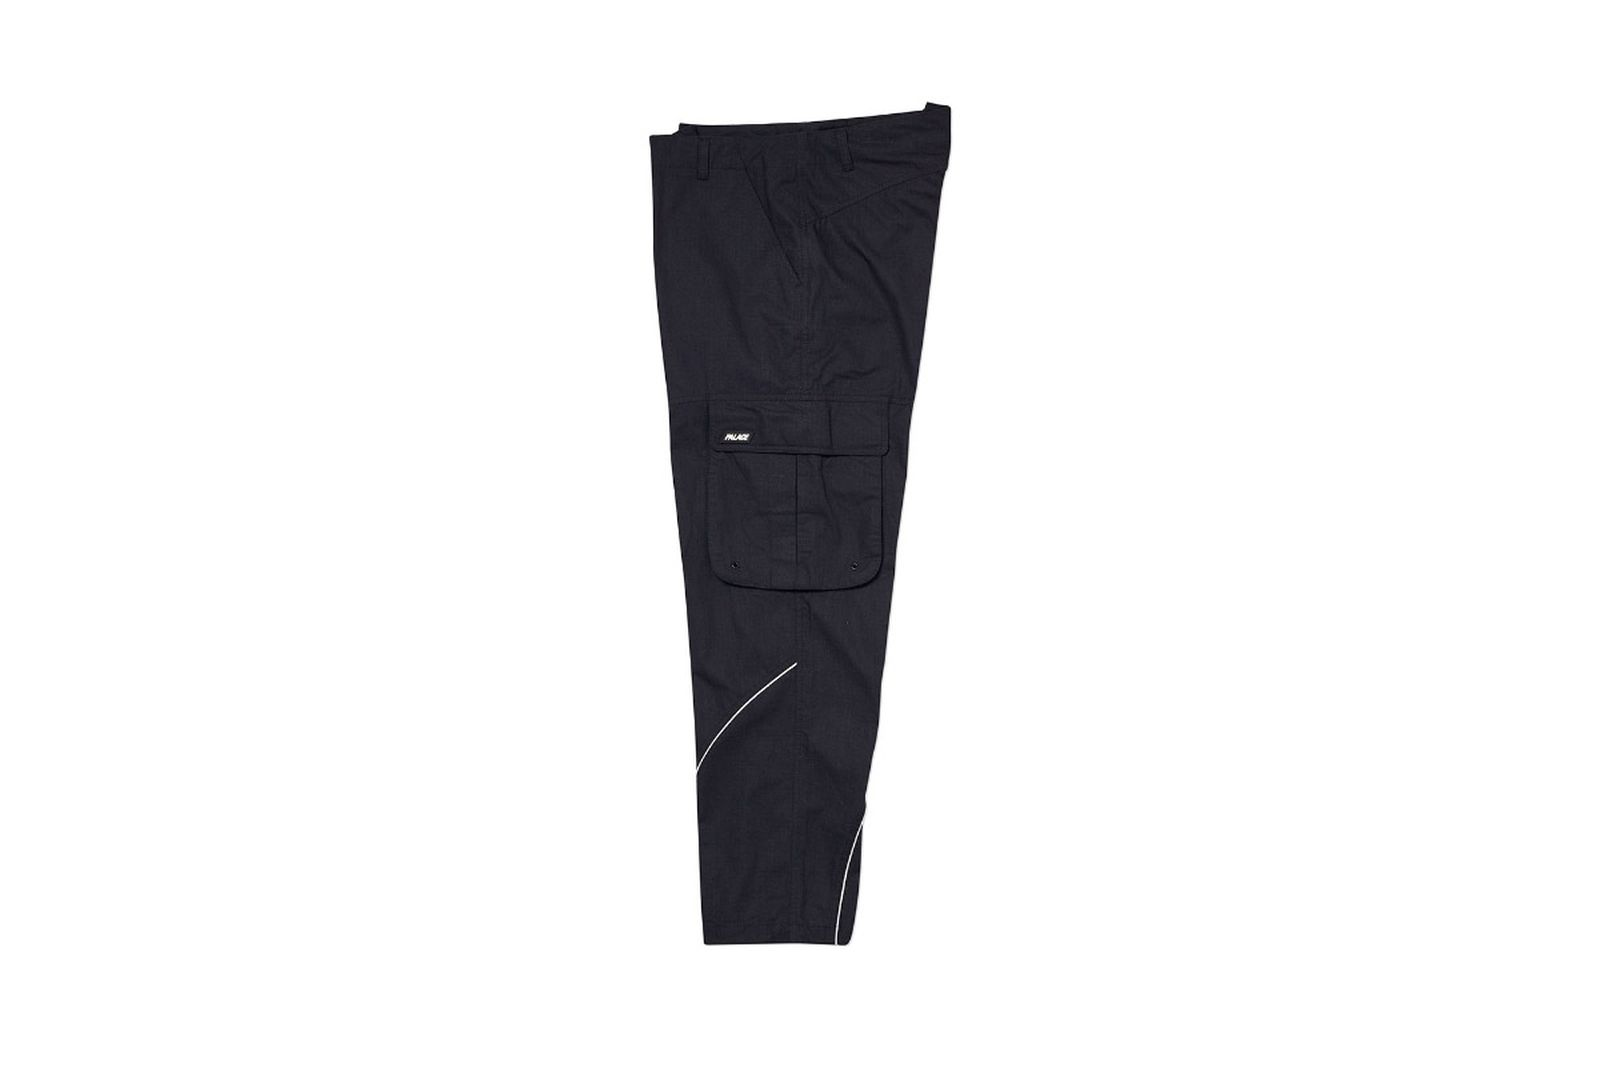 Palace 2019 Autumn Trouser Cargo black side fw19